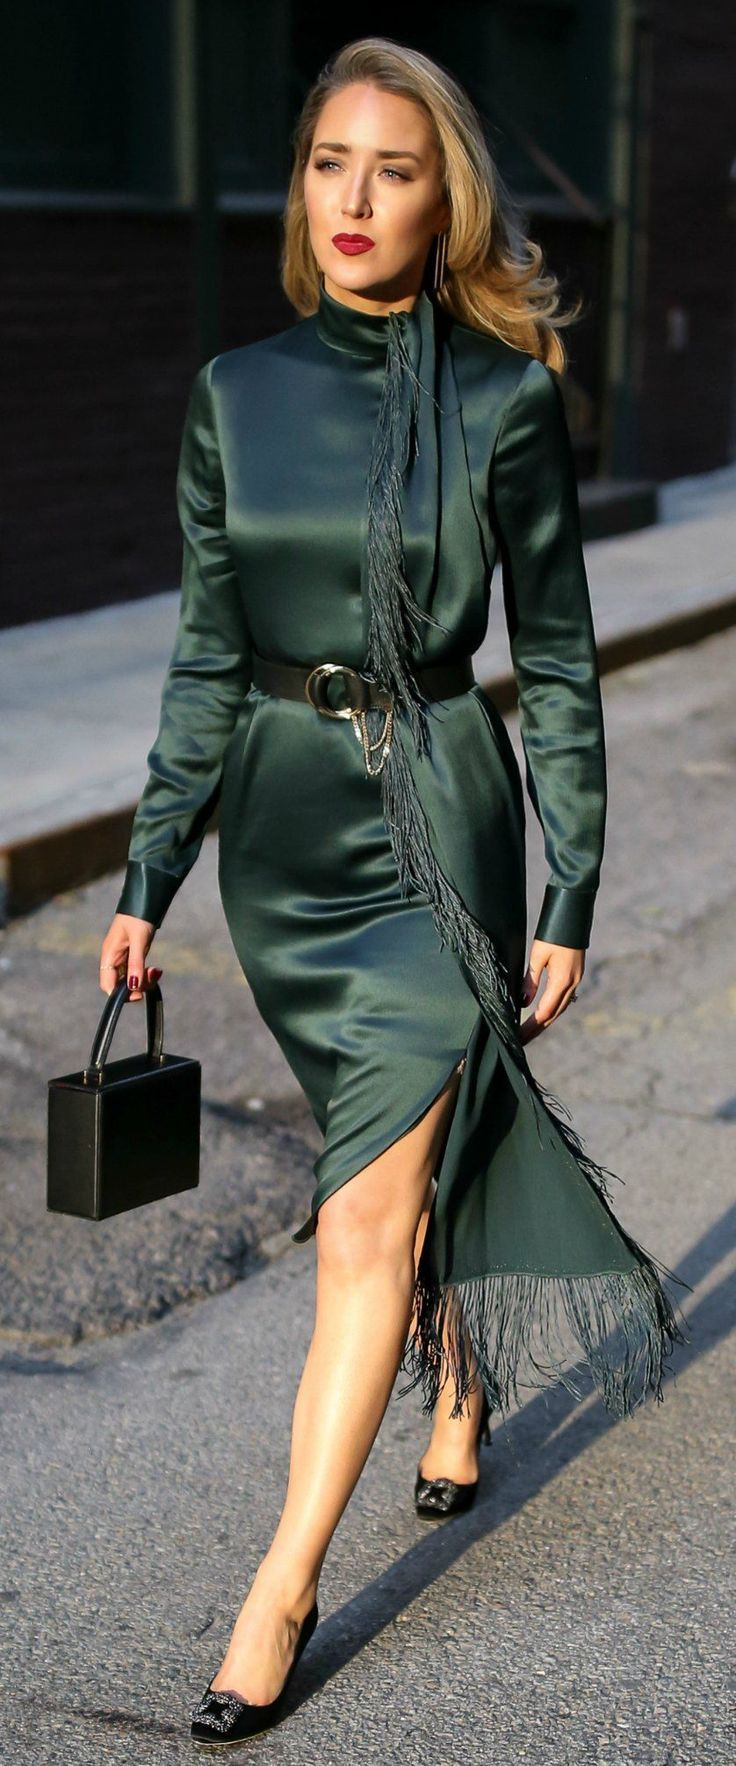 The One Accessory I Cannot Live Without Emerald Green Long Sleeve Midi Dress With Fringe Detail Black Waist Belt With Chain Black Top Naryady Platya Stil [ 1766 x 736 Pixel ]